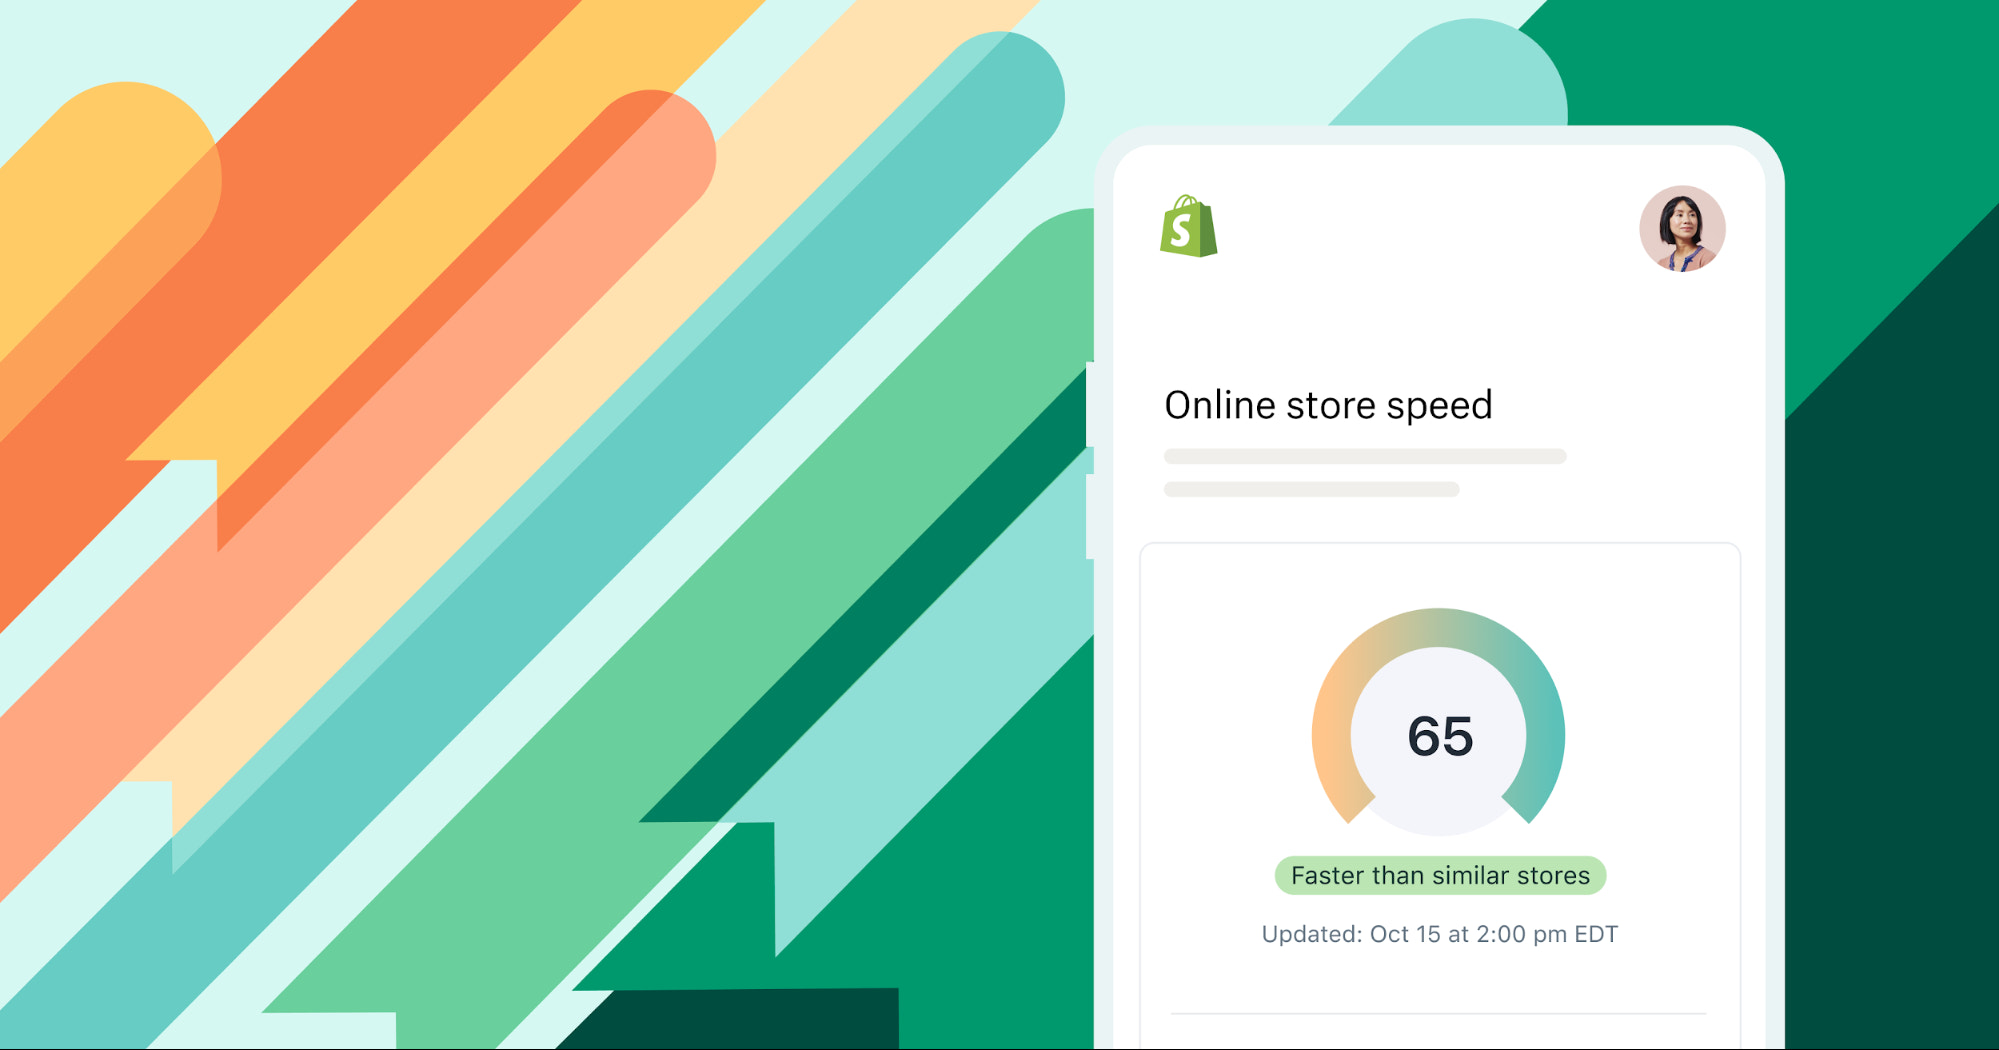 Shopify Online Store Speed: How to Measure and Optimize It